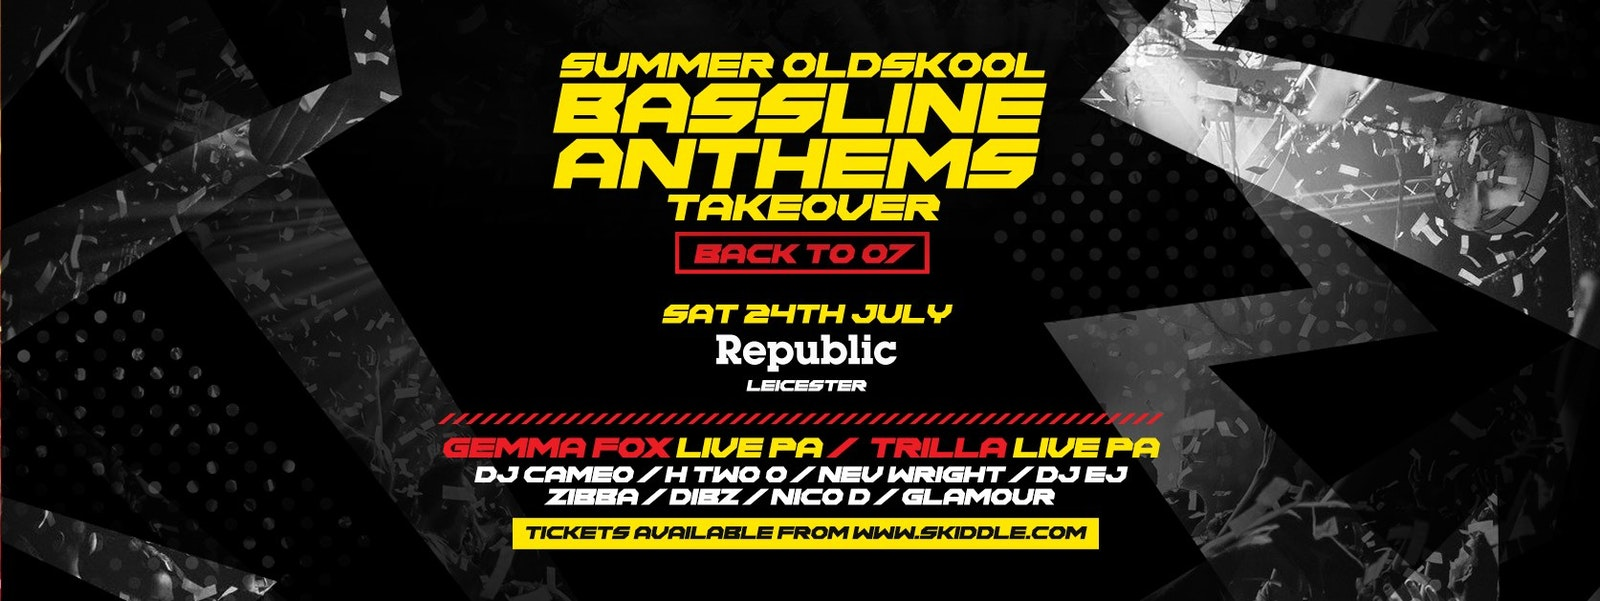 Summer Oldskool Bassline Anthems Takeover at Republic